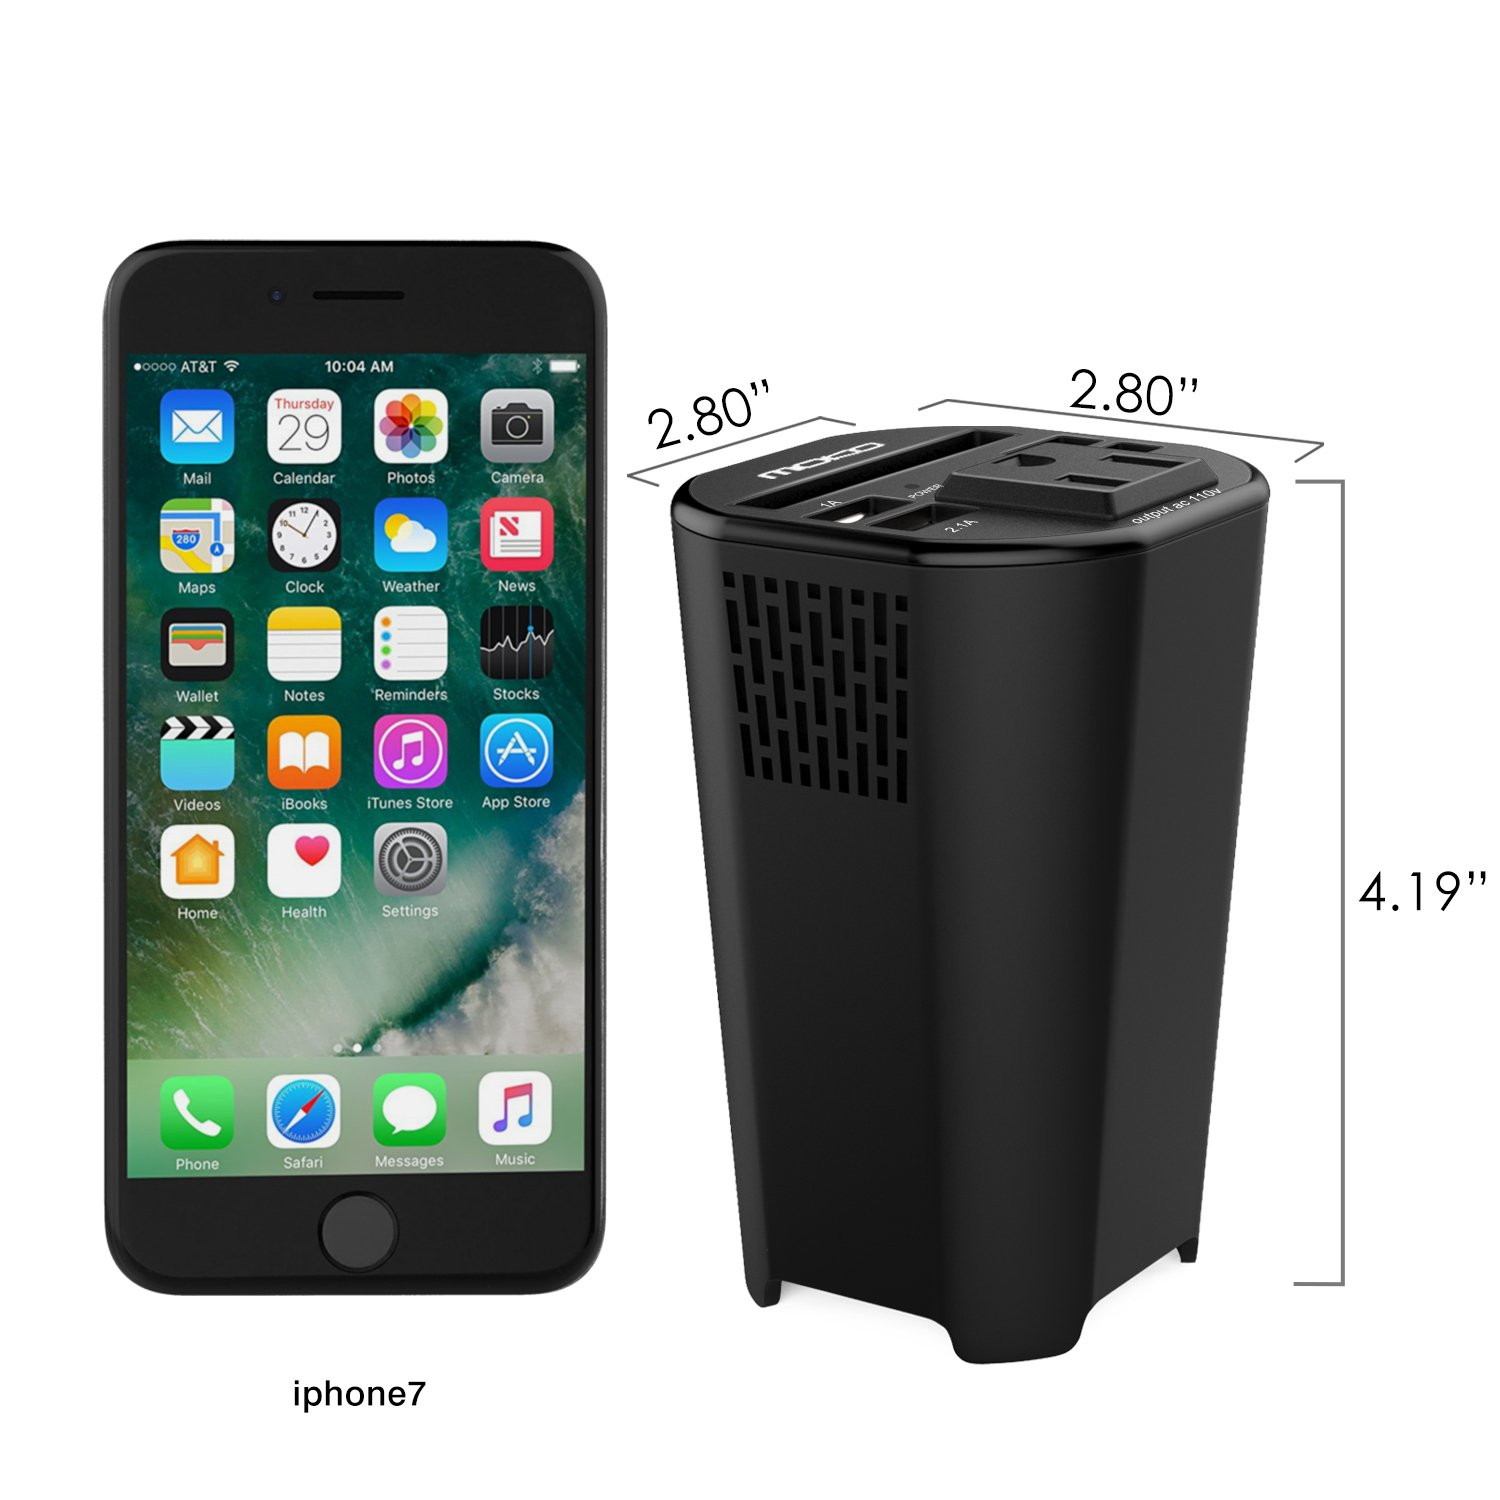 MoKo 150W Car Power Inverter, DC 12V to 110V AC Outlet Cup Holder Converter Adapter, with 4 USB Port Charger, for iPhone X/8/8 Plus, MacBook, iPad Pro, Chromebook, Galaxy S8 and etc. (Black) by MoKo (Image #7)